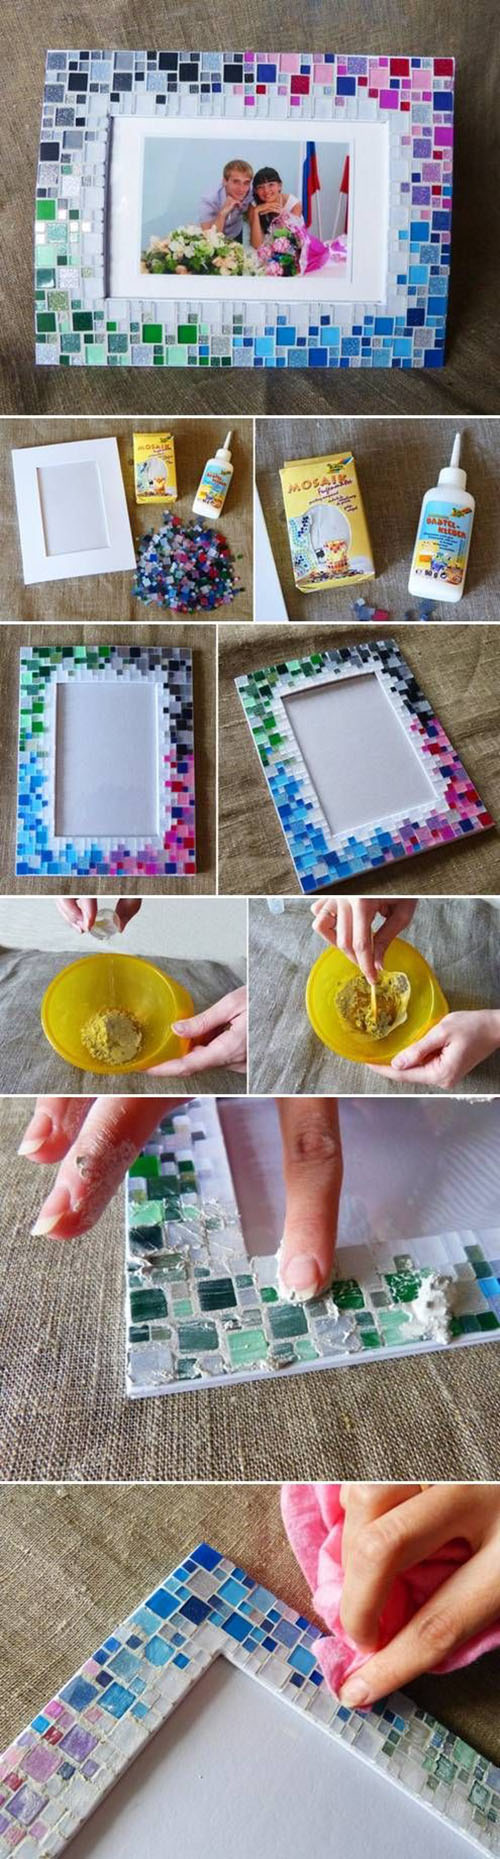 6  DIY Colorful Mosaic Picture Frame085d7a